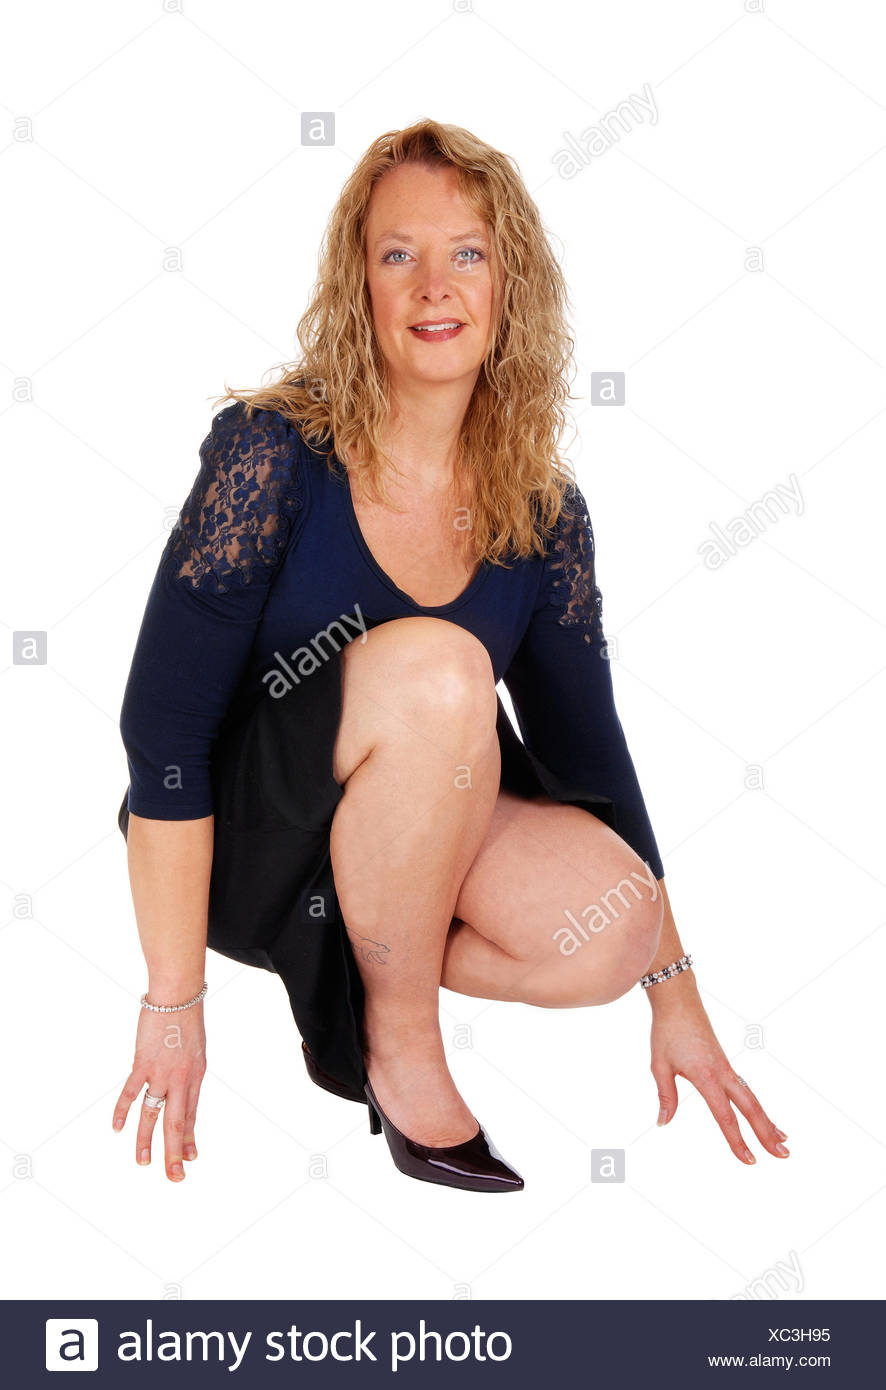 Lovely woman crouching on floor. Stock Photo